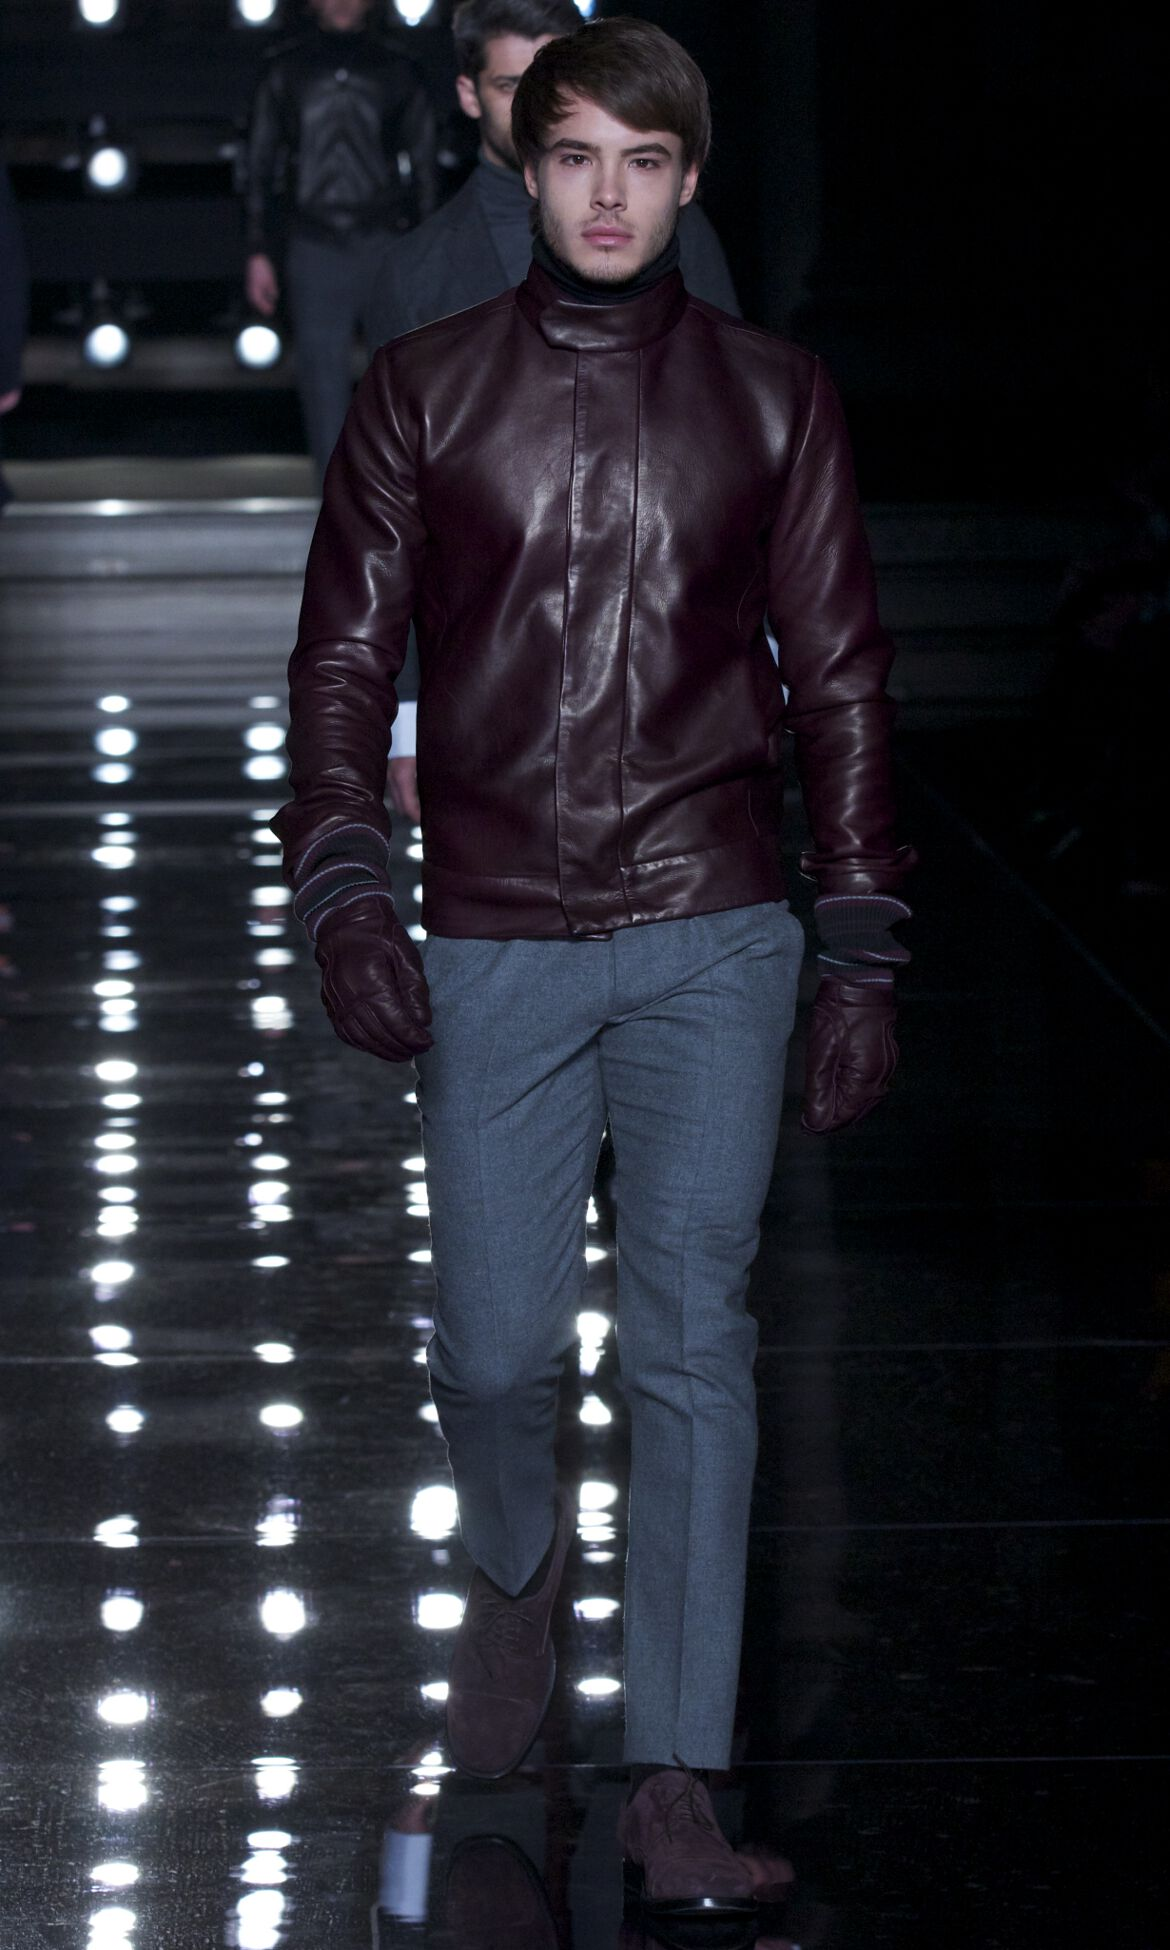 Ermanno Scervino Fall Winter 2013 14 Menswear Collection Pitti Uomo